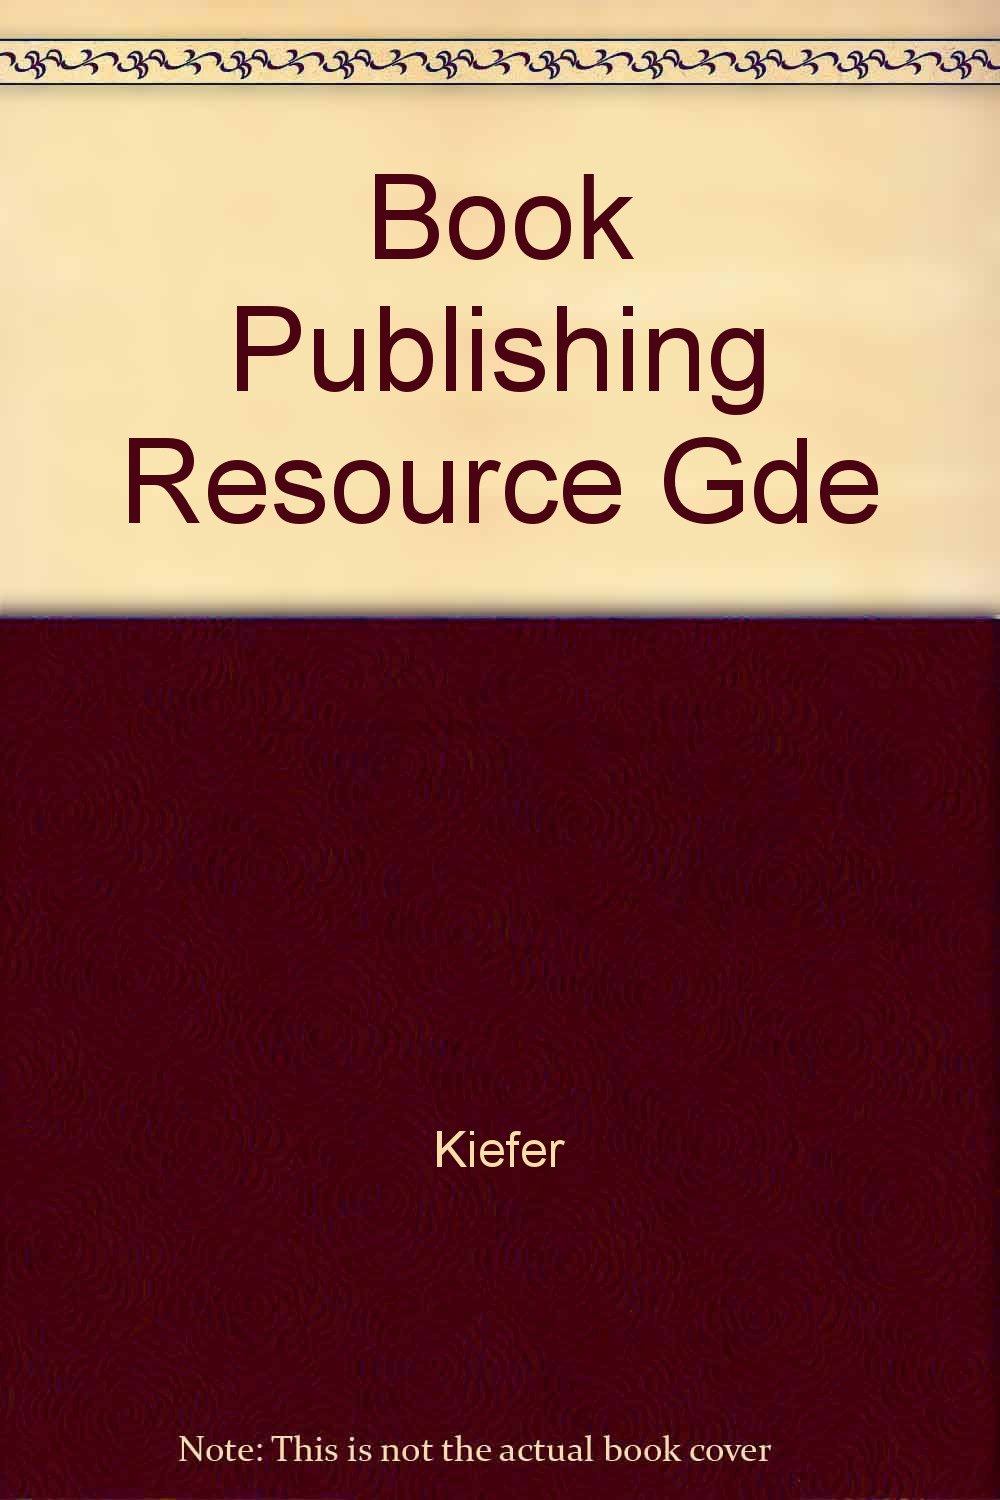 Book Publishing Resource Guide: Complete Listings for More Than 7500 Book Marketing Contacts and Resources by Ad-Lib Pubns